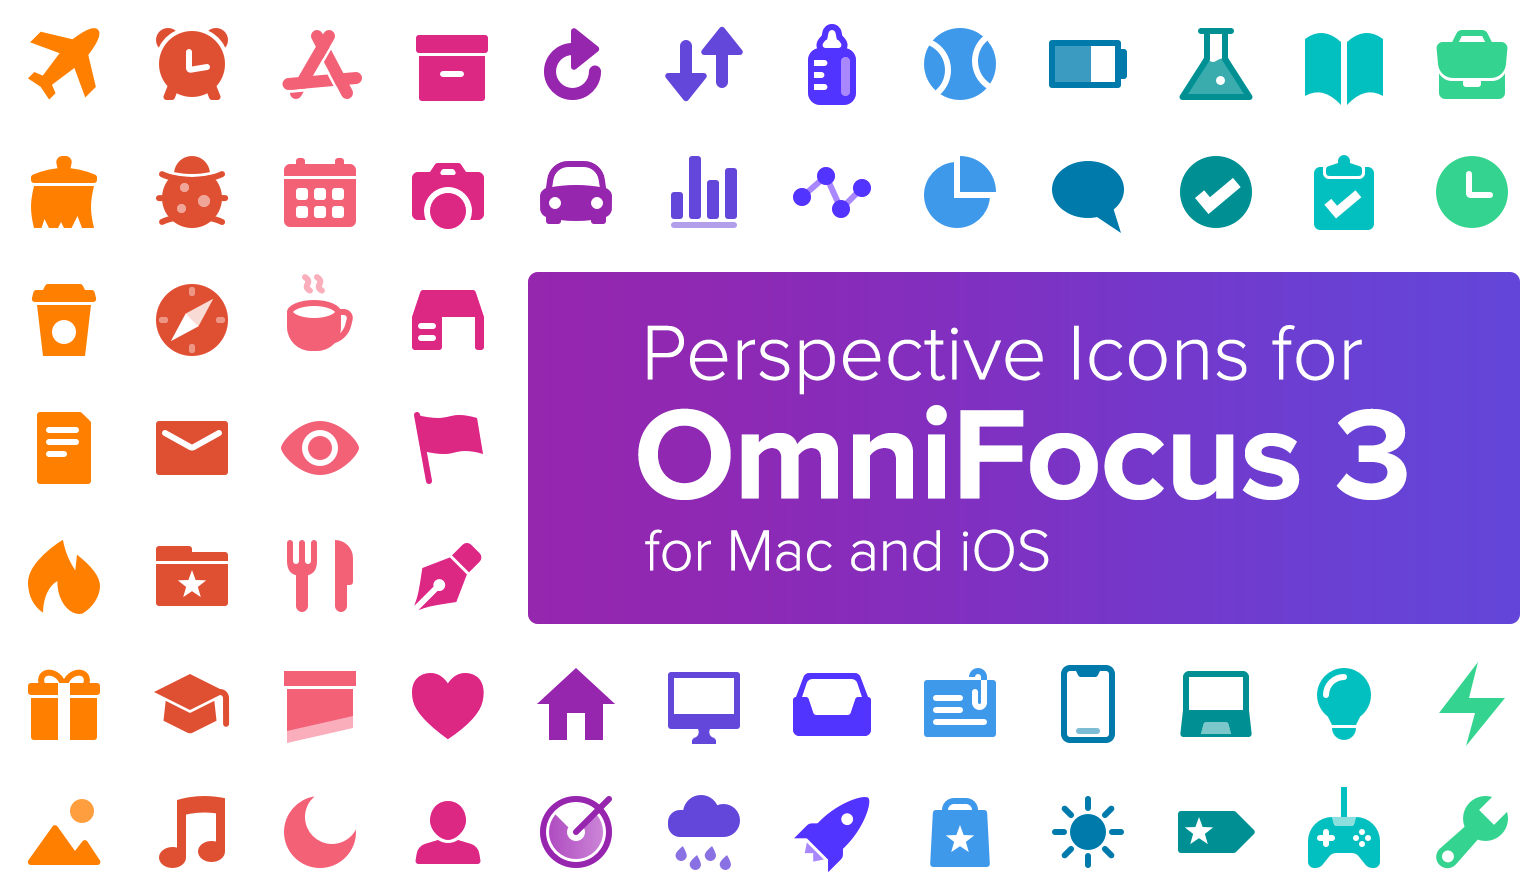 Perspective Icons for OmniFocus 3, by Josh Hughes